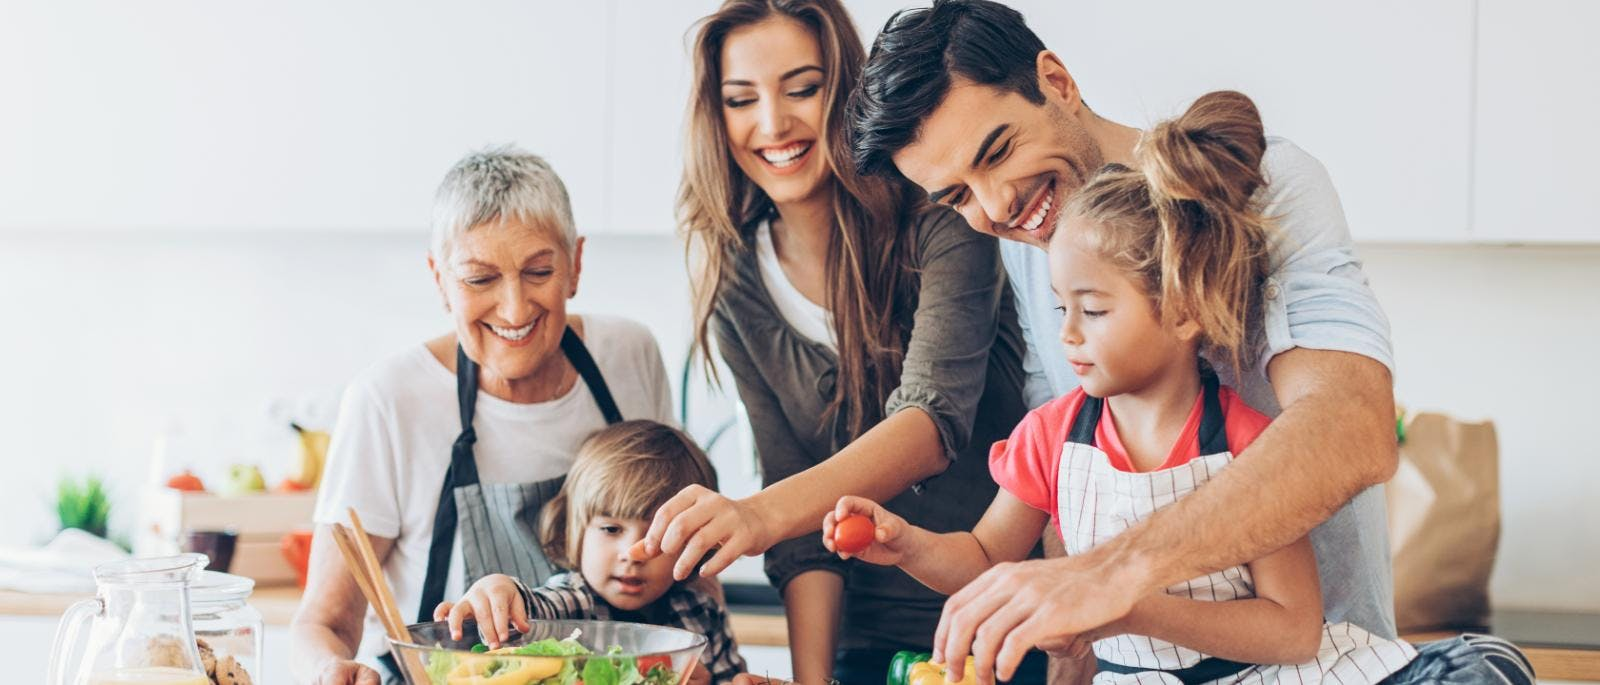 A happy family cooking in the kitchen